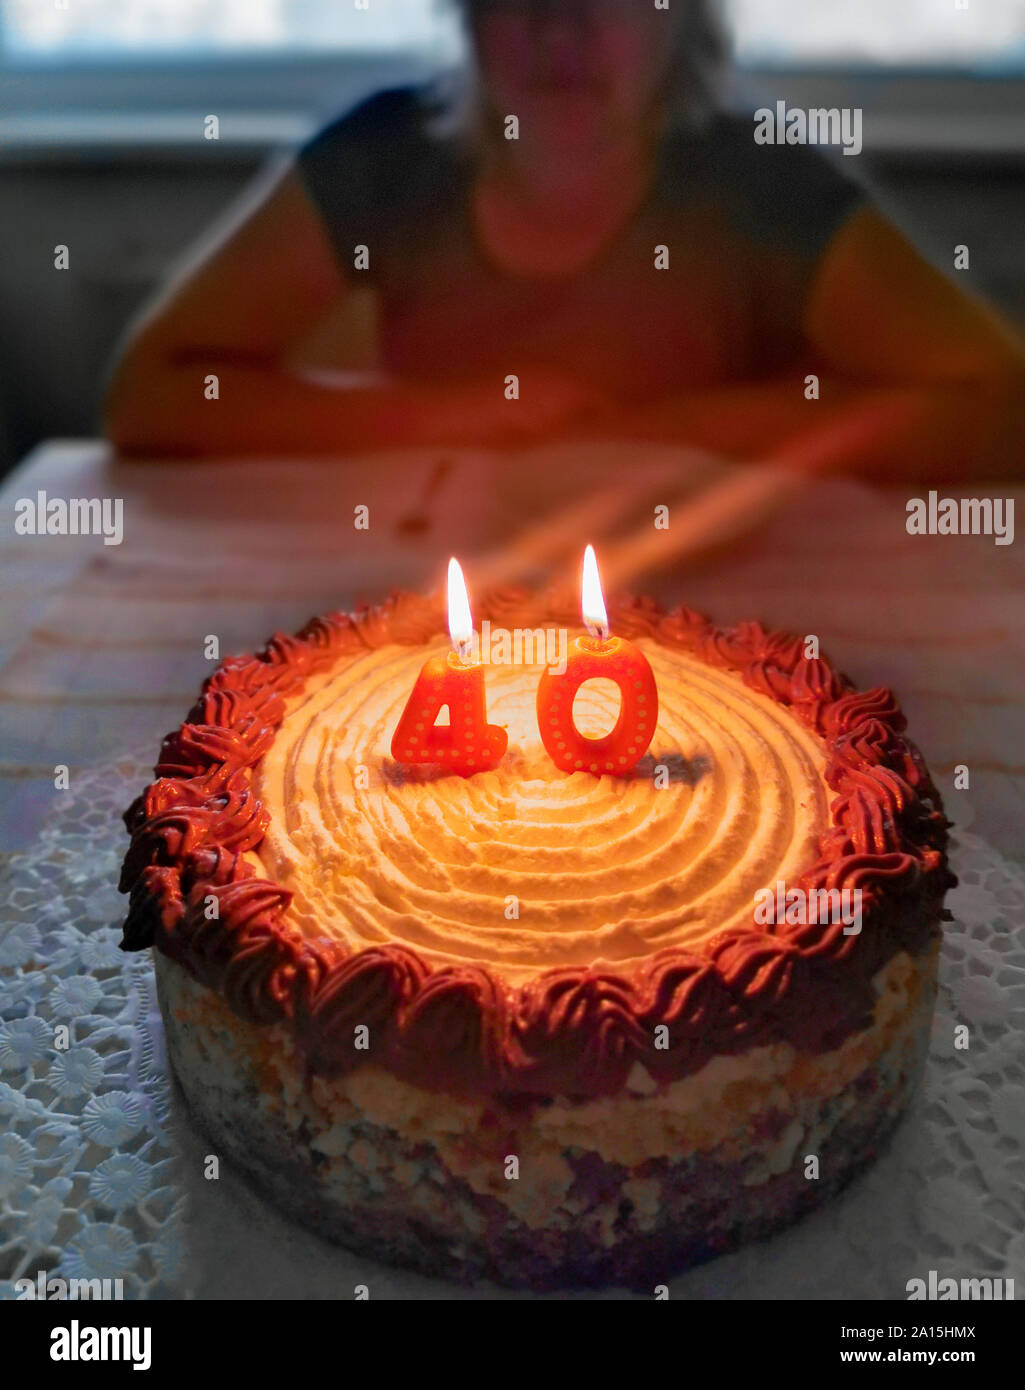 Awe Inspiring 40Th Birthday Cake Stock Photos 40Th Birthday Cake Stock Images Funny Birthday Cards Online Alyptdamsfinfo